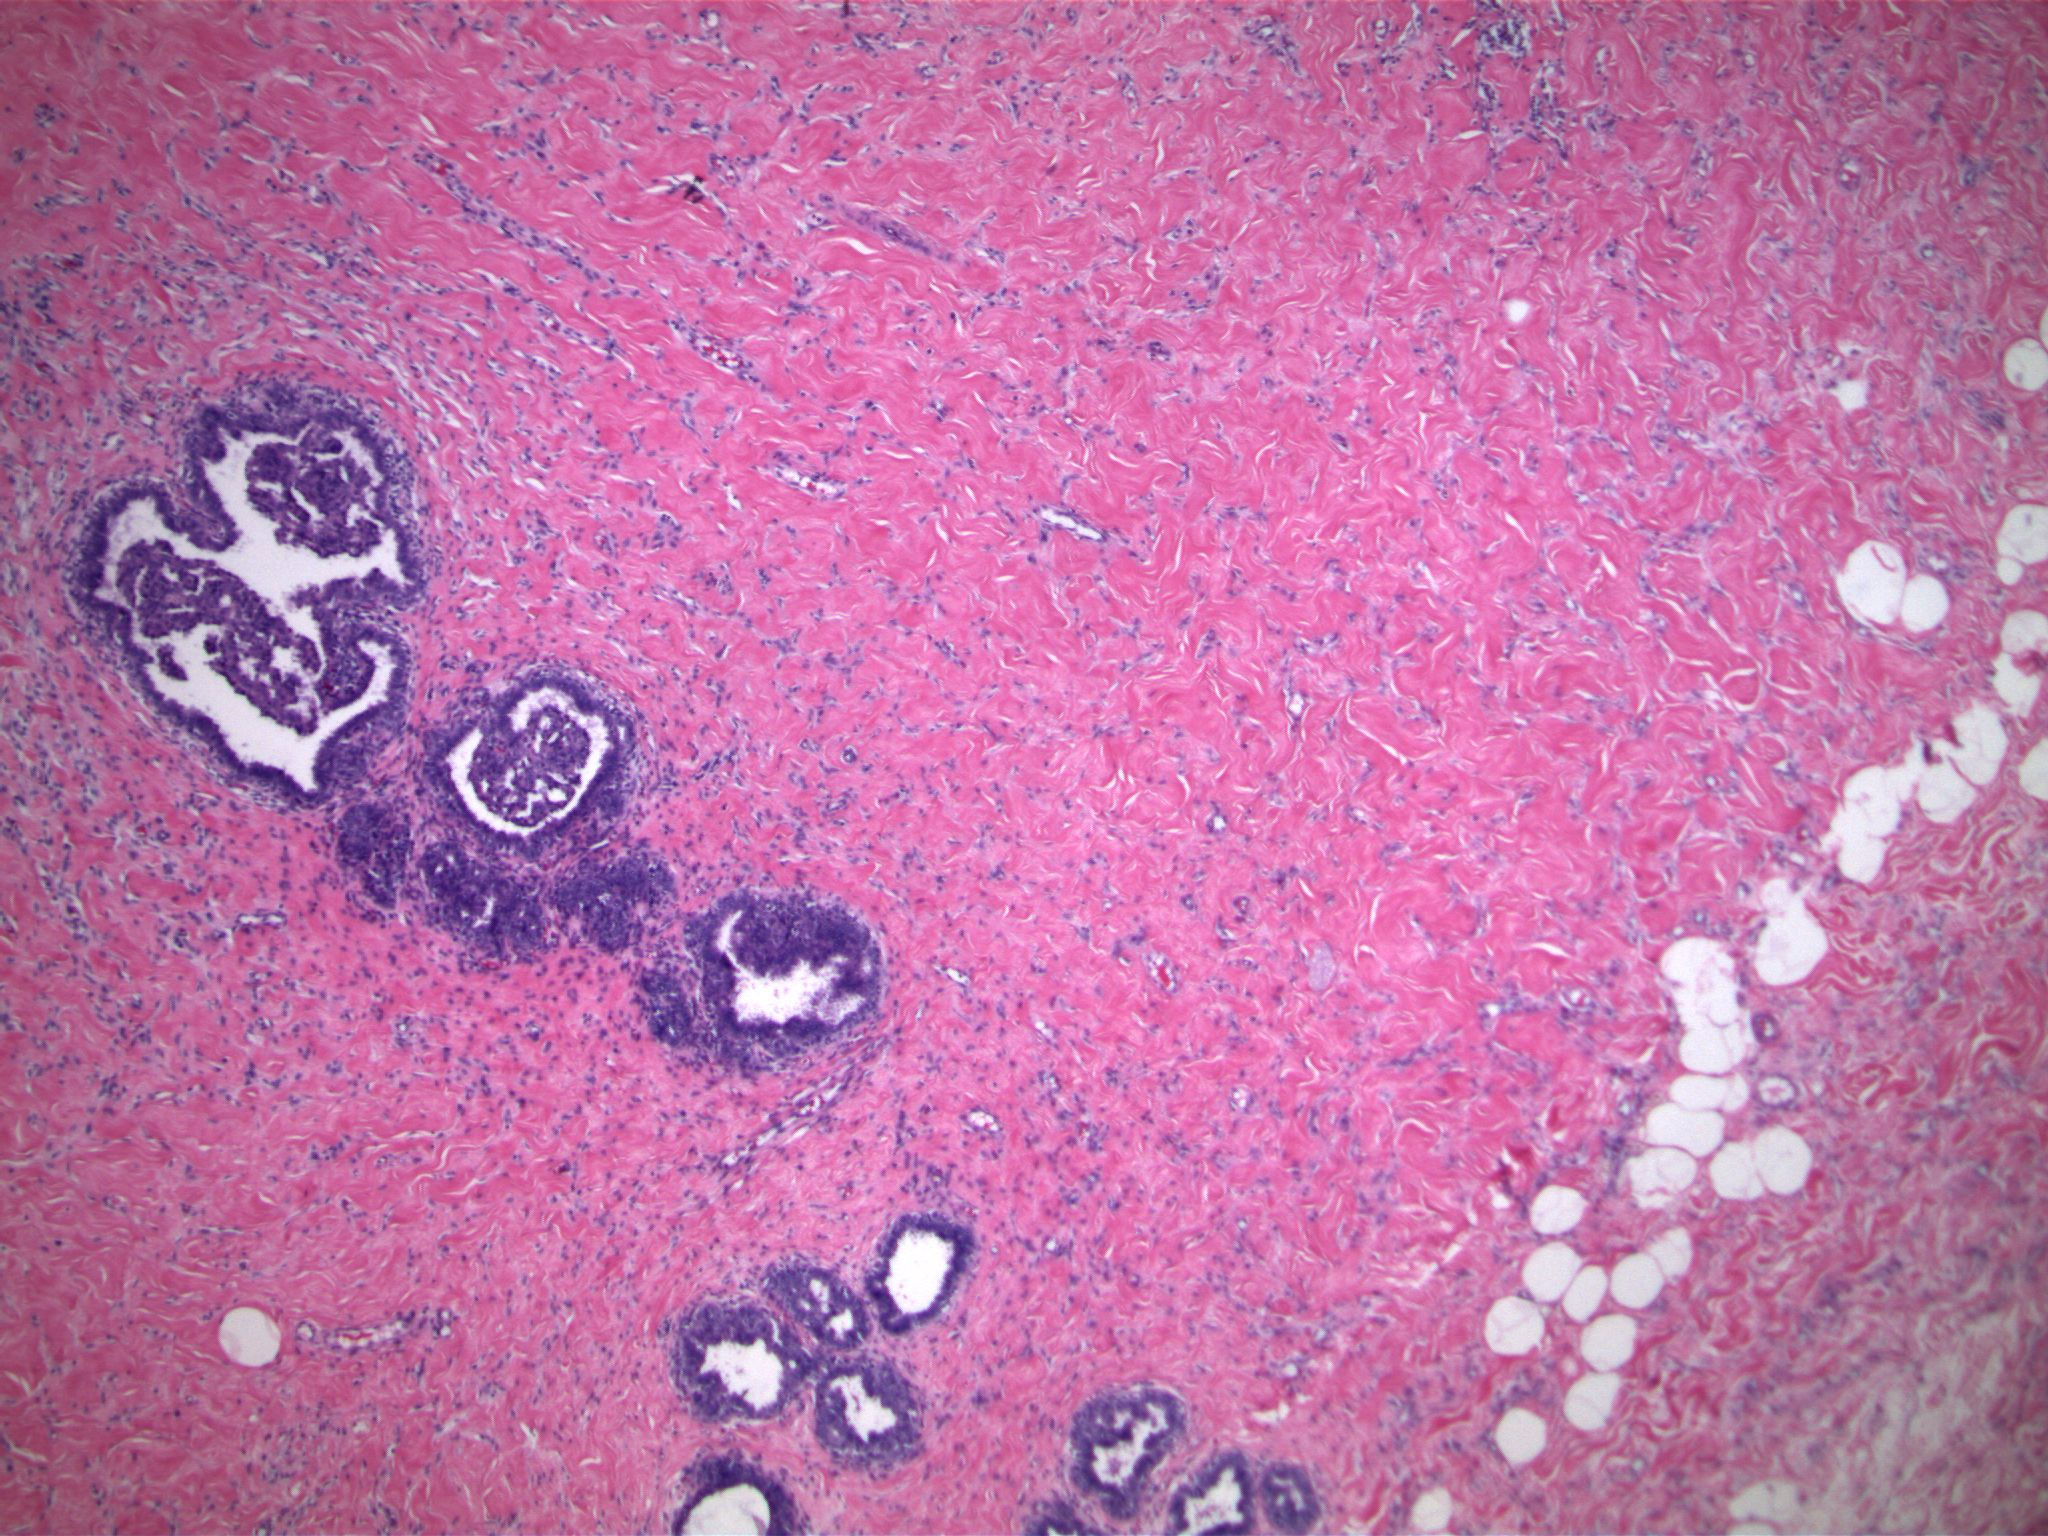 Image 1.  Dense stromal fibrosis surrounds a lobular unit that contains an epithelial proliferation.